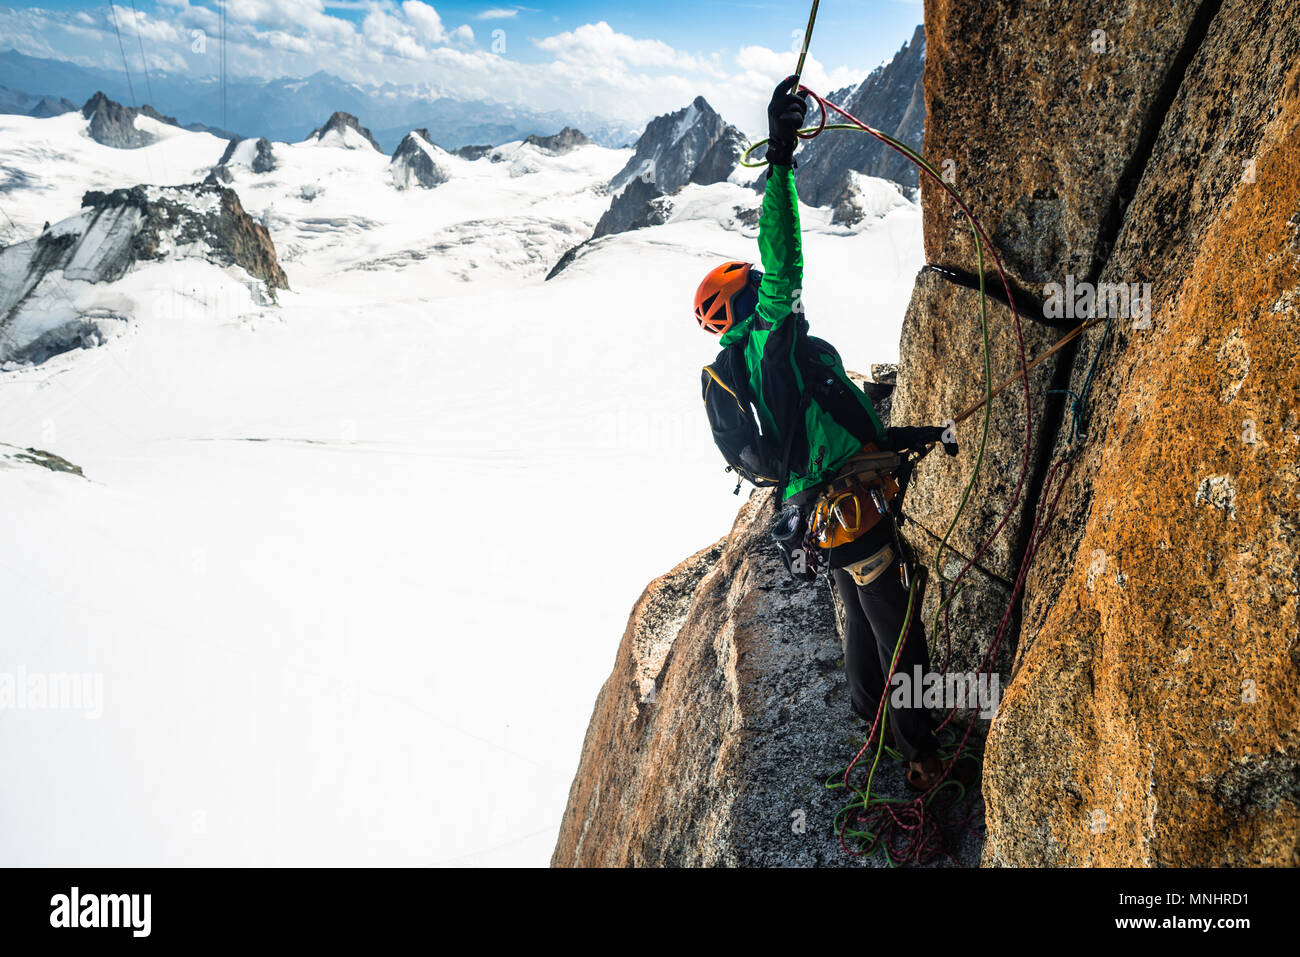 Side view of adventurous rock climber preparing to rappel from climbing route, Aiguille Du Midi, Haute-Savoie, France - Stock Image